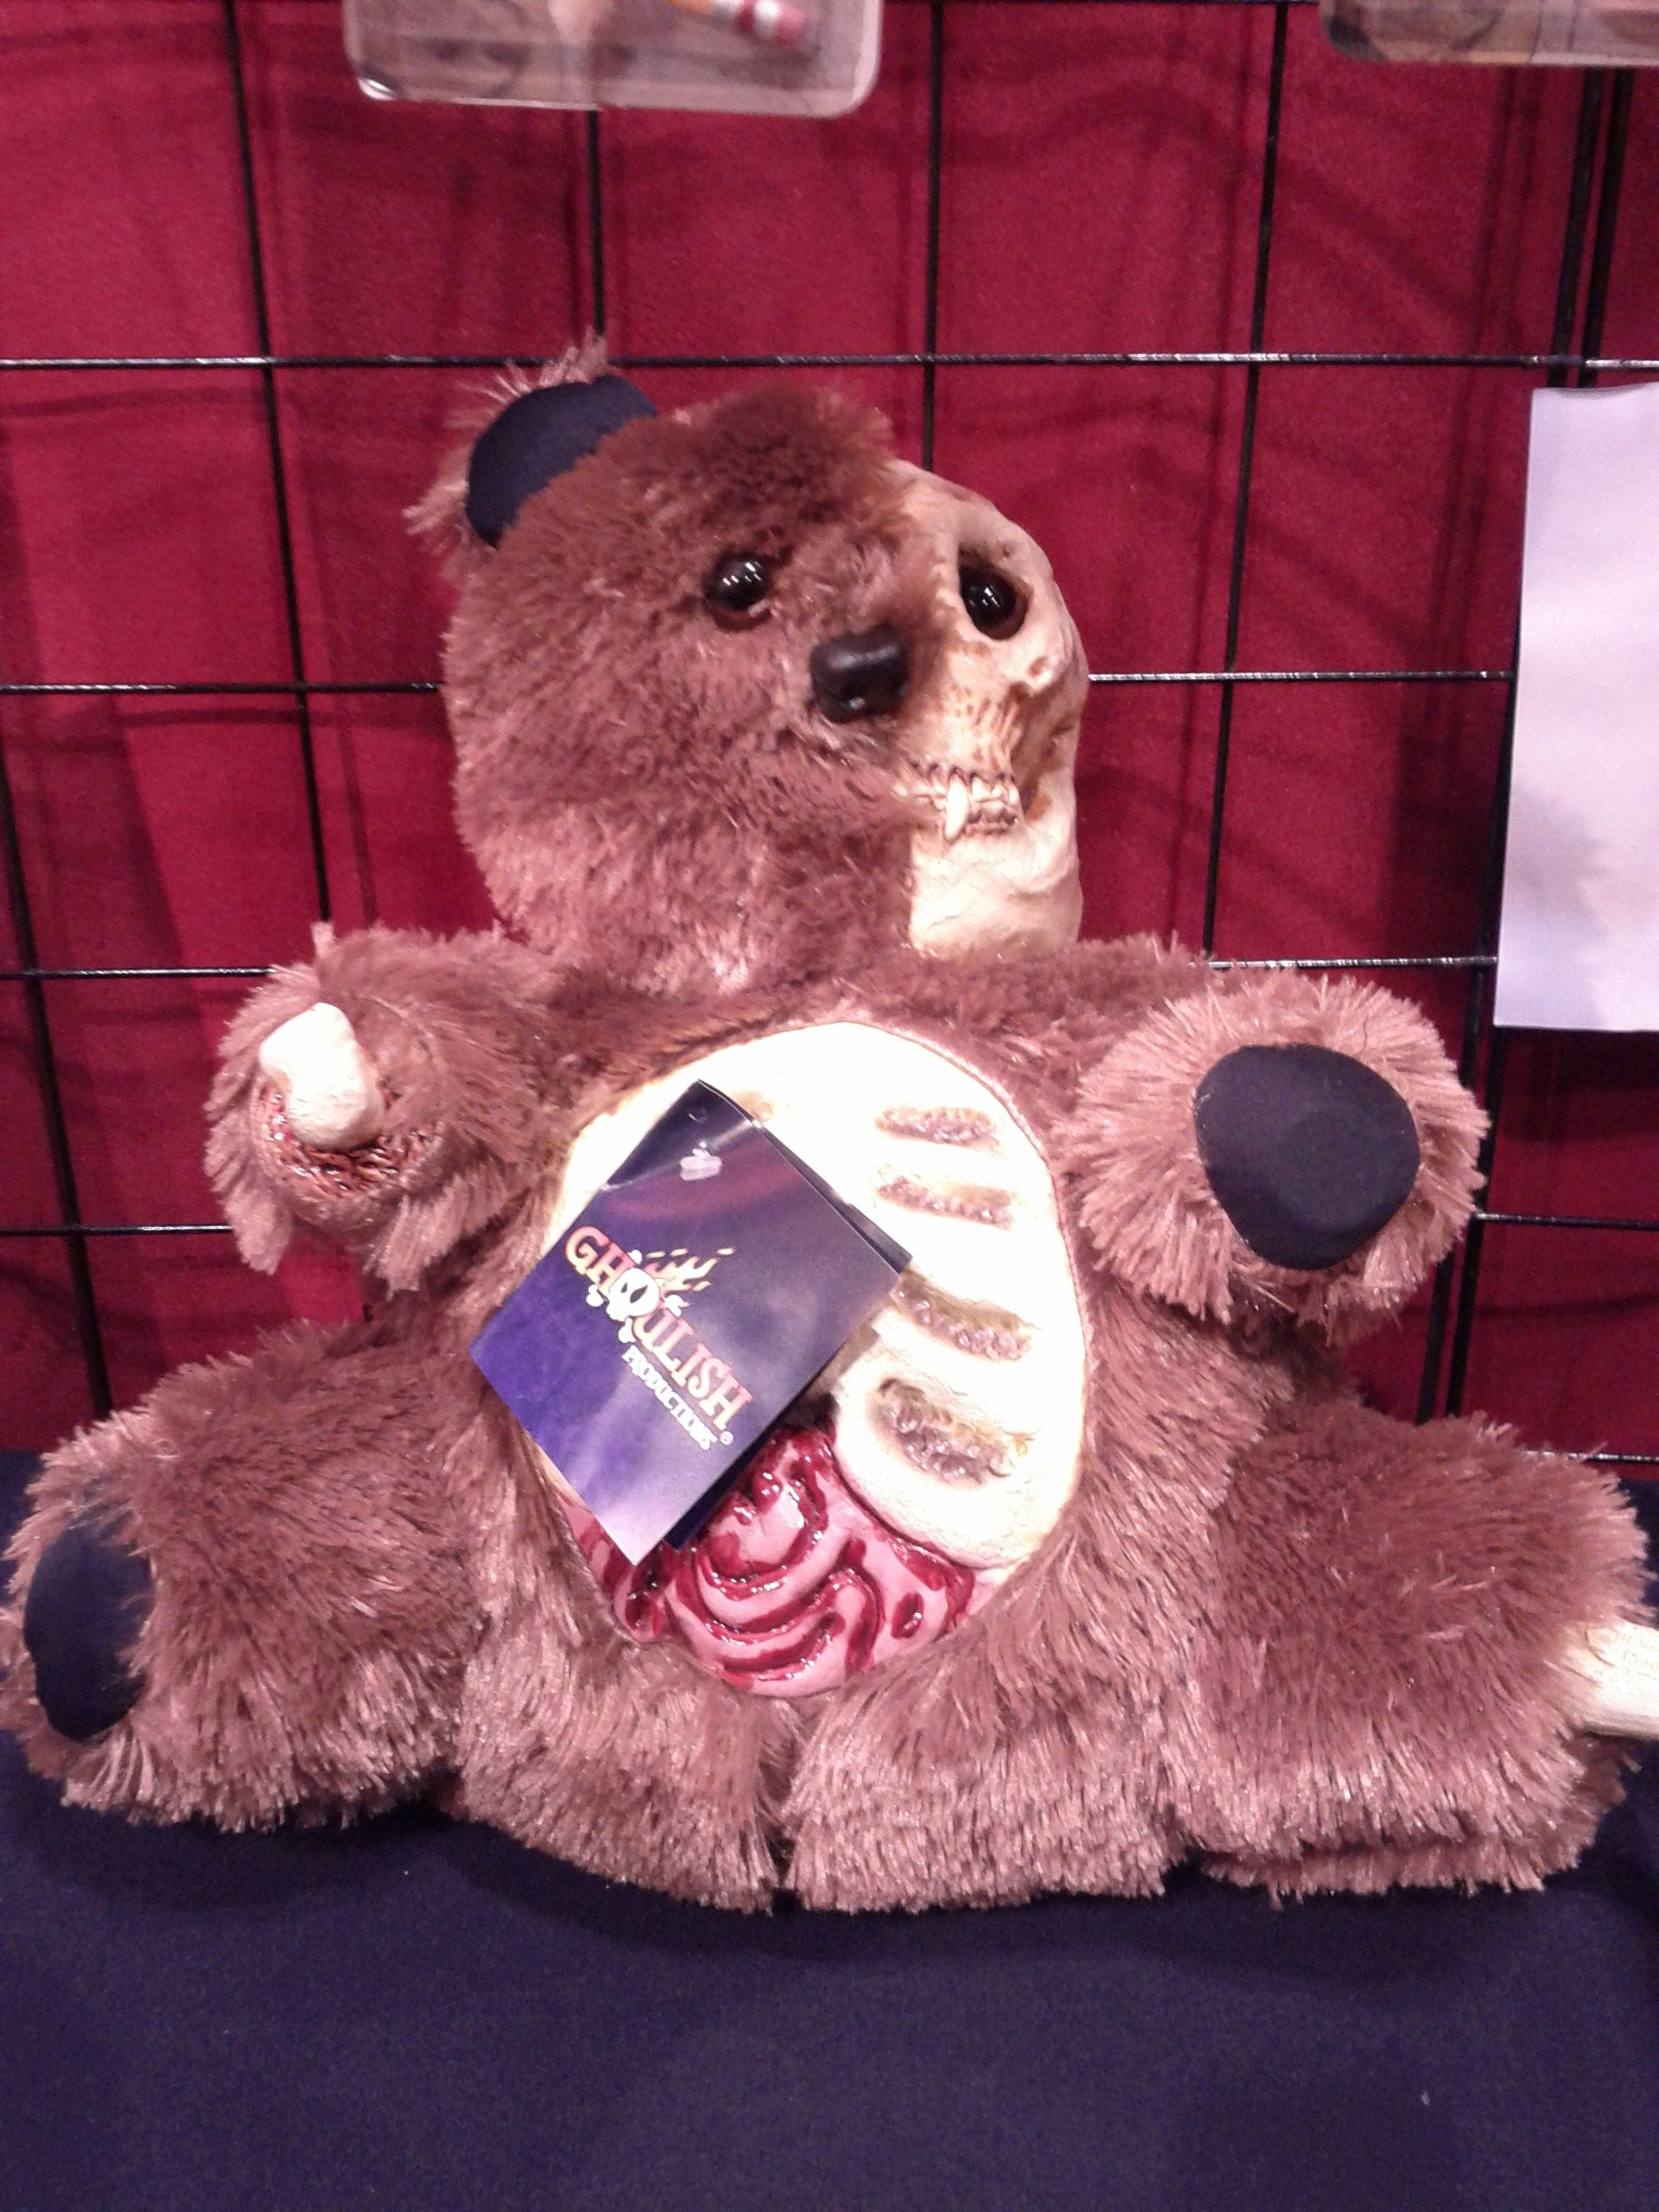 Scary Teddy Bear from Ghoulish Productions booth at the Halloween ...